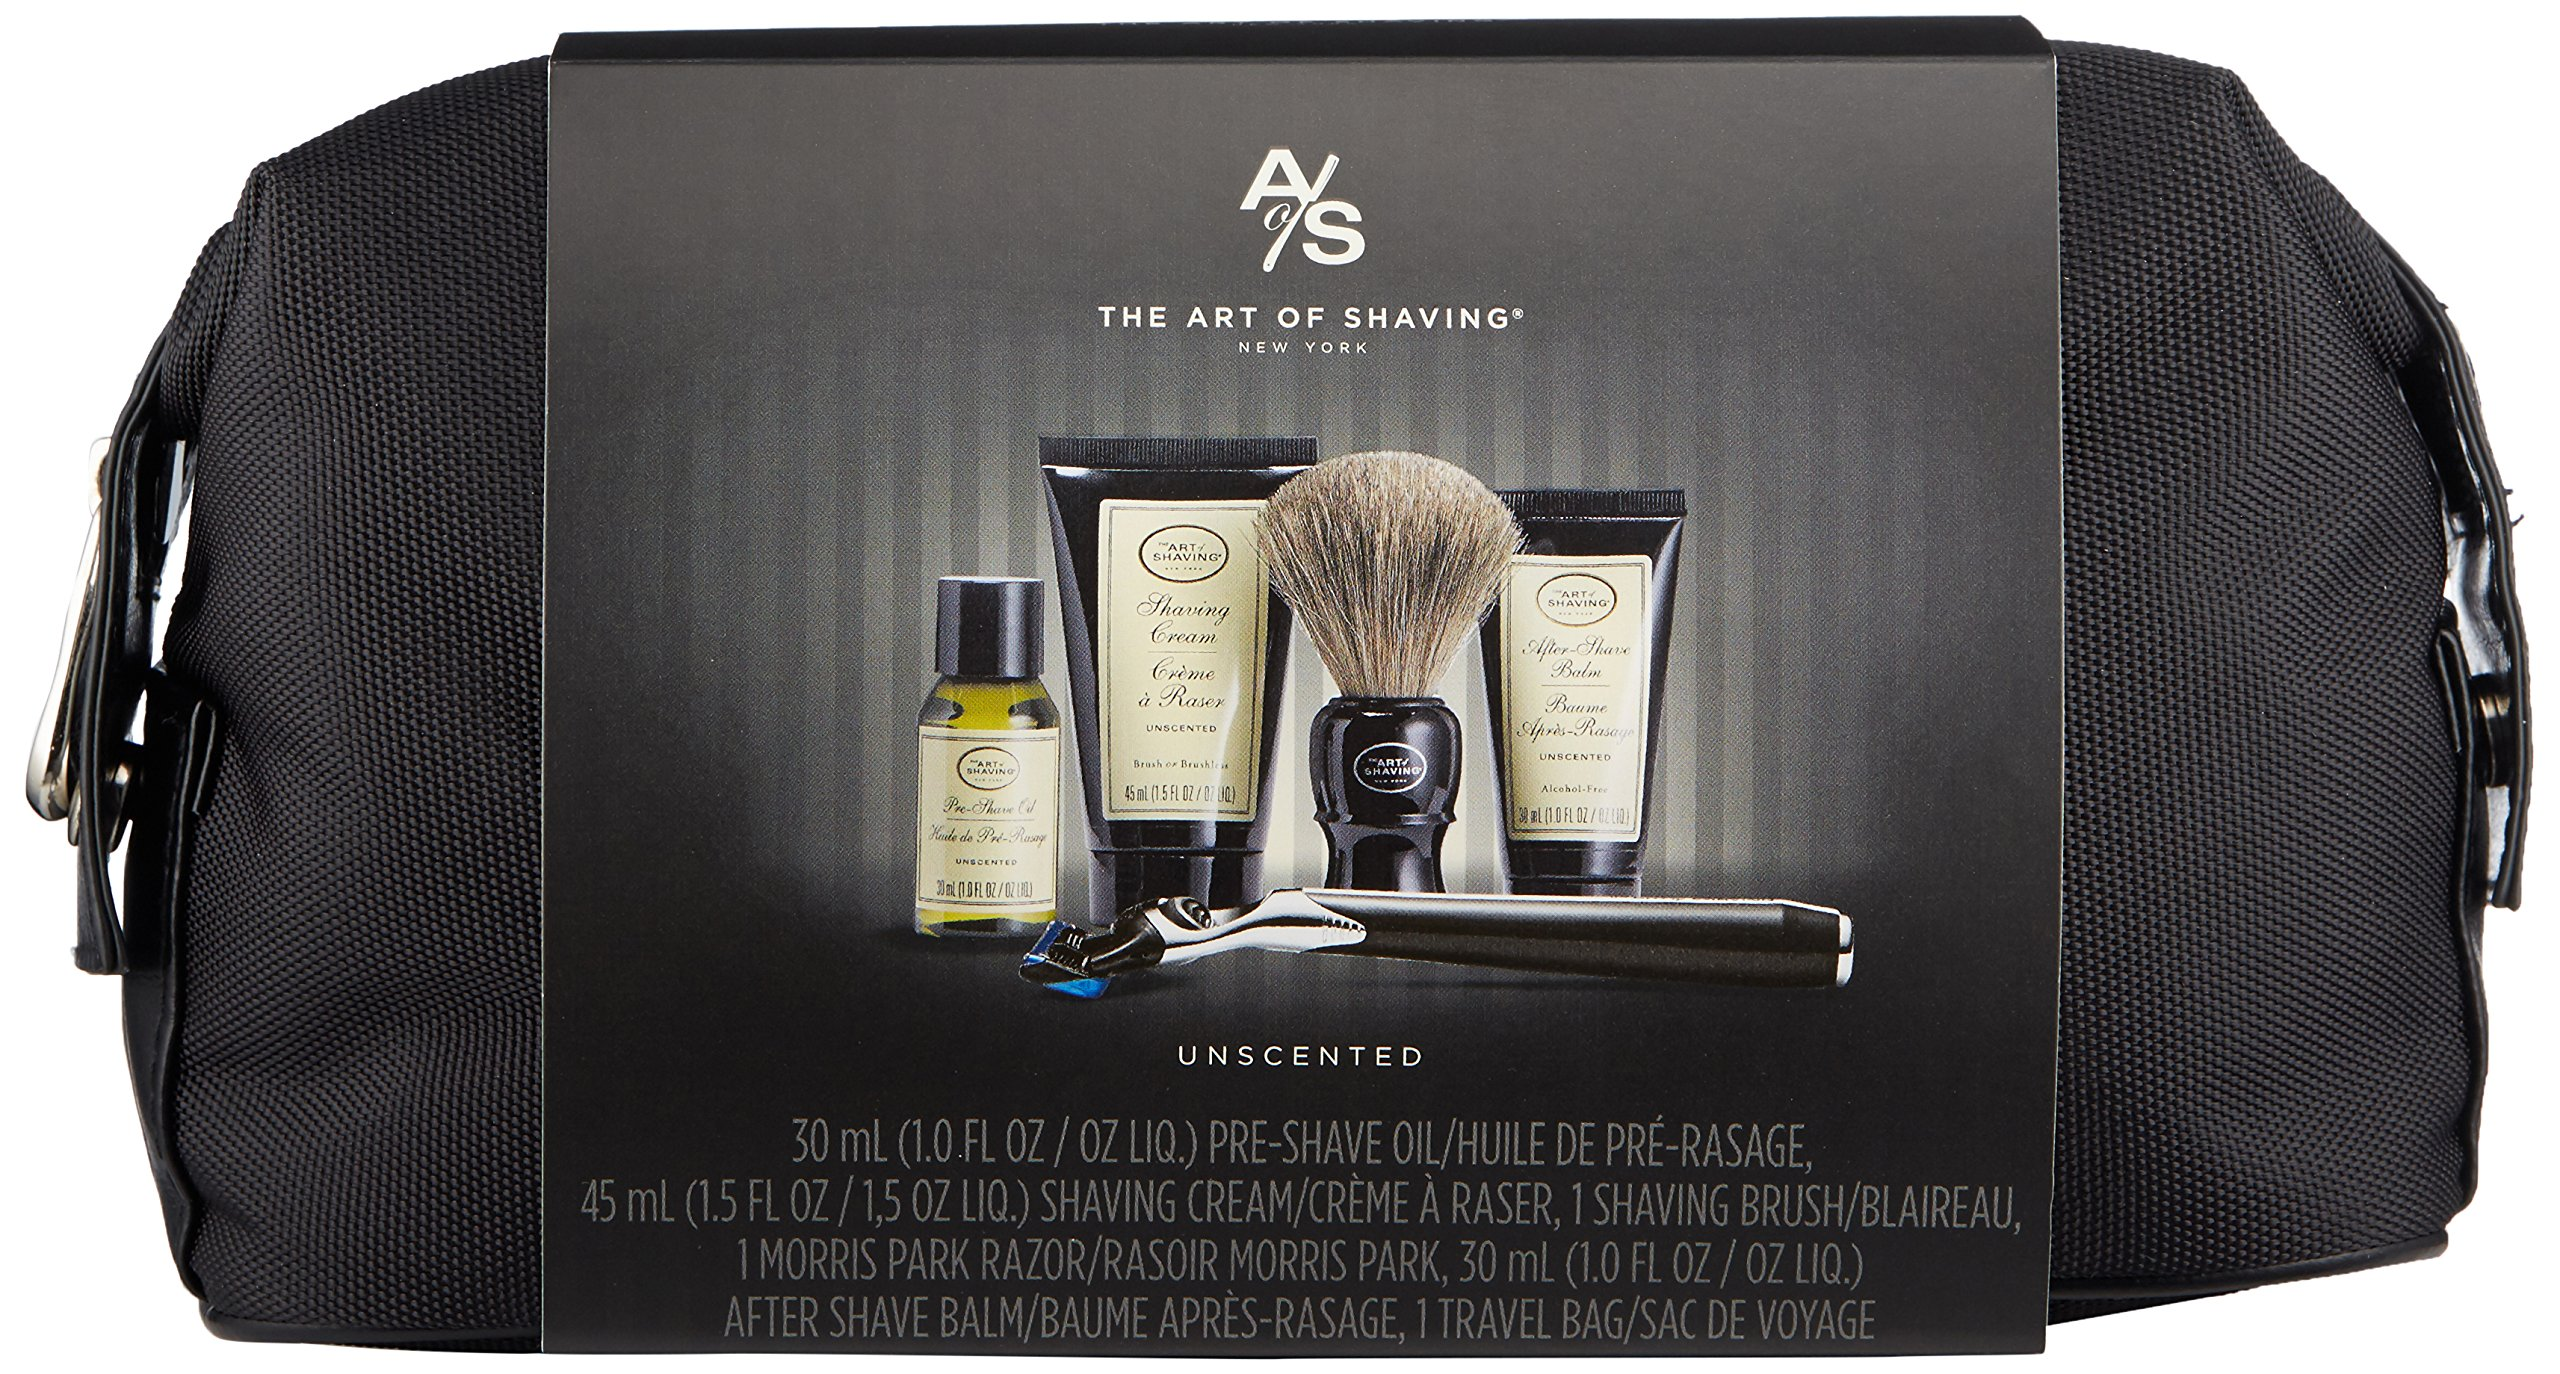 The Art of Shaving 5 Piece Travel Kit with Morris Park Razor, Unscented by The Art of Shaving (Image #2)